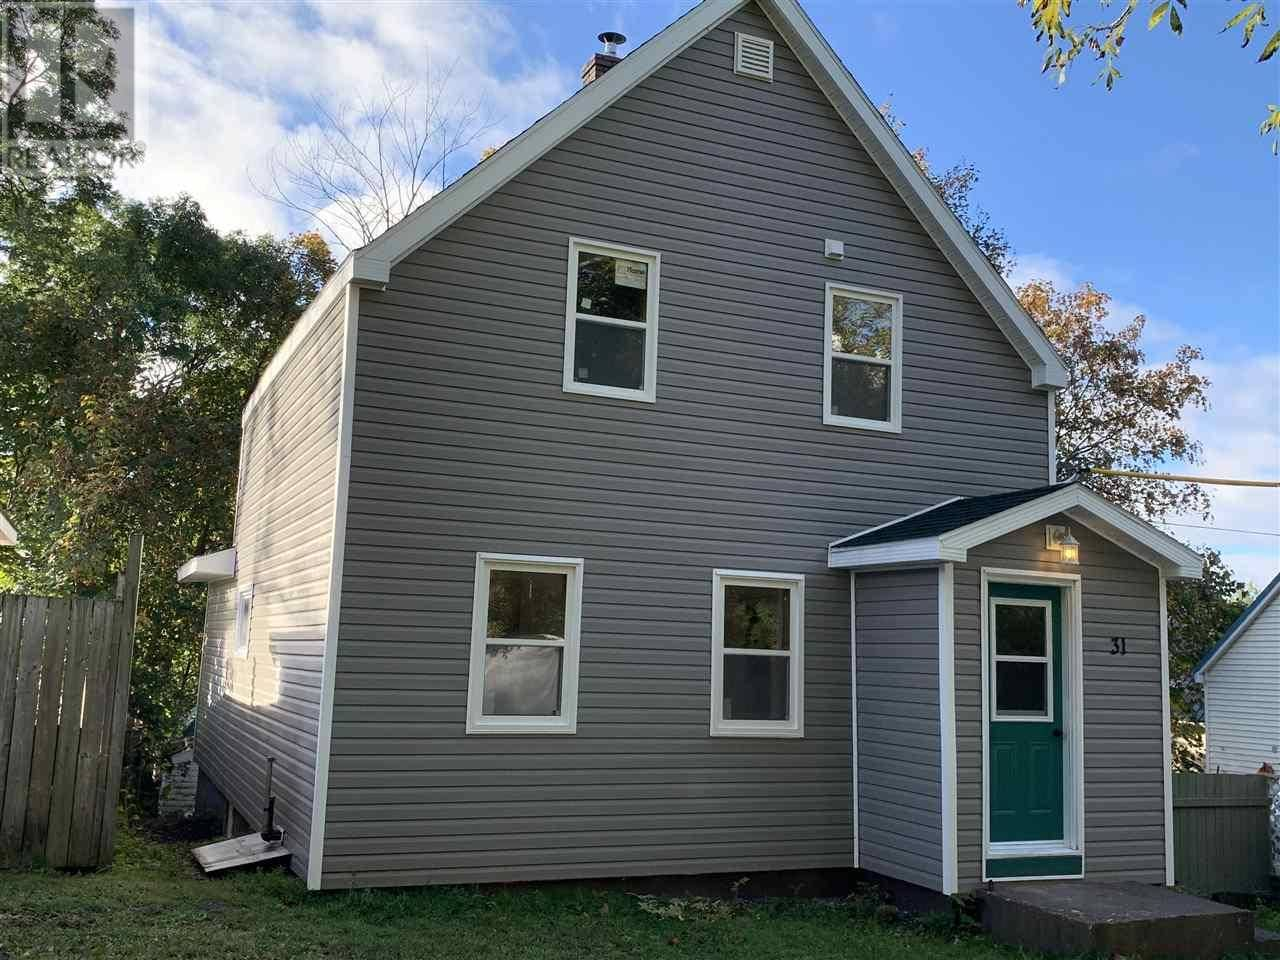 House for sale at 31 Prince Albert St Pictou Nova Scotia - MLS: 201924710